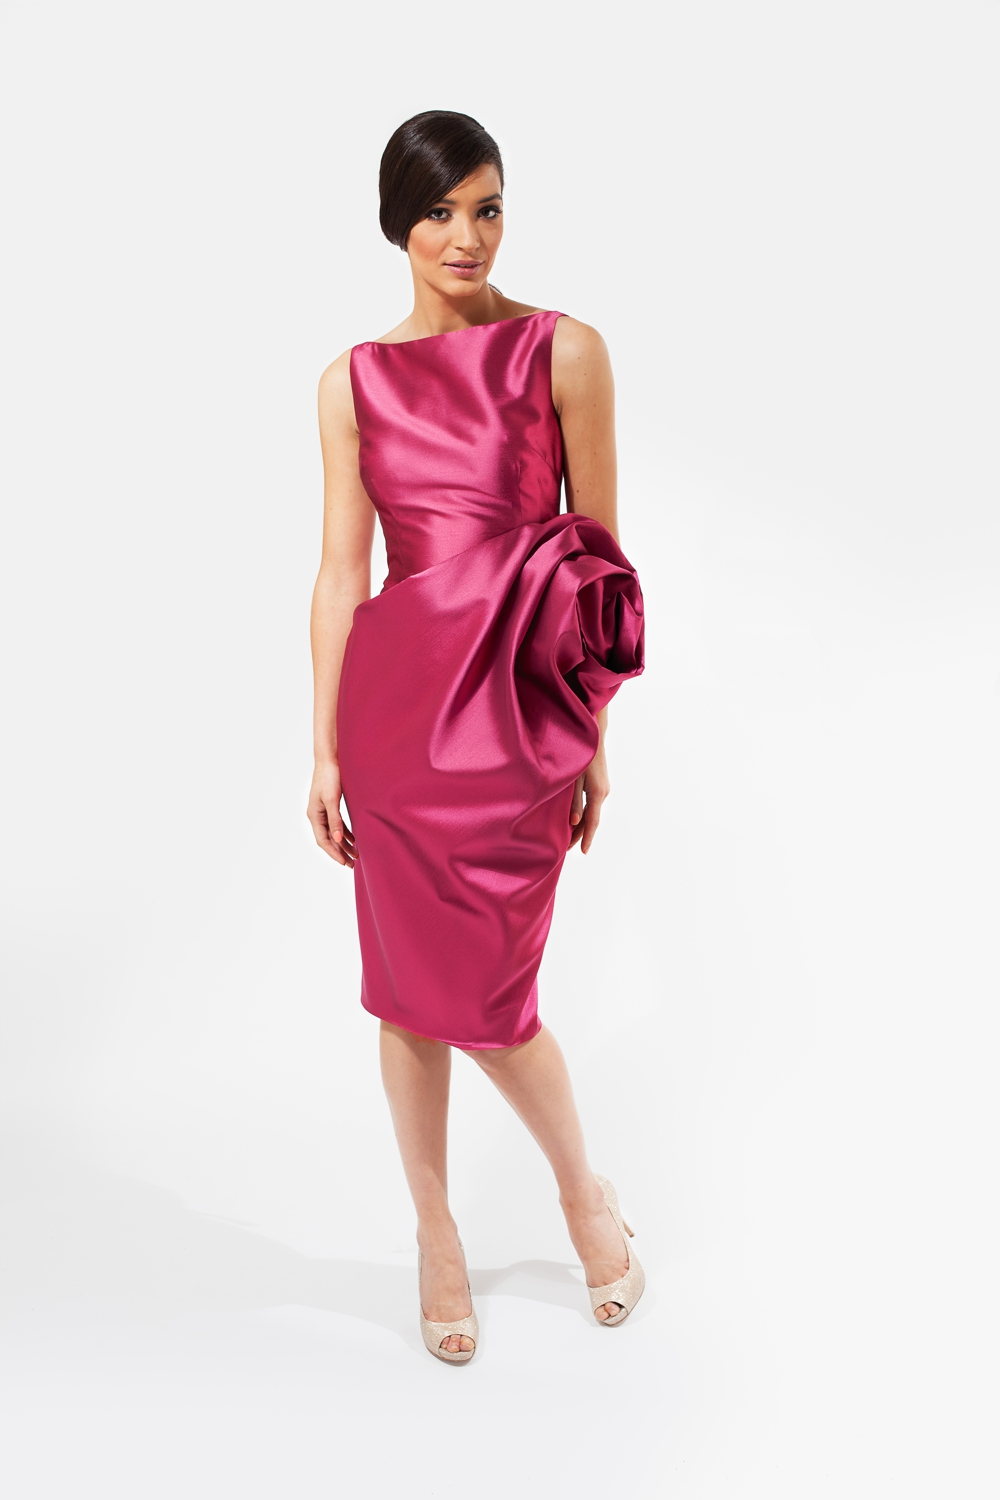 Fuchsia pink designer couture dress with sculptured rose